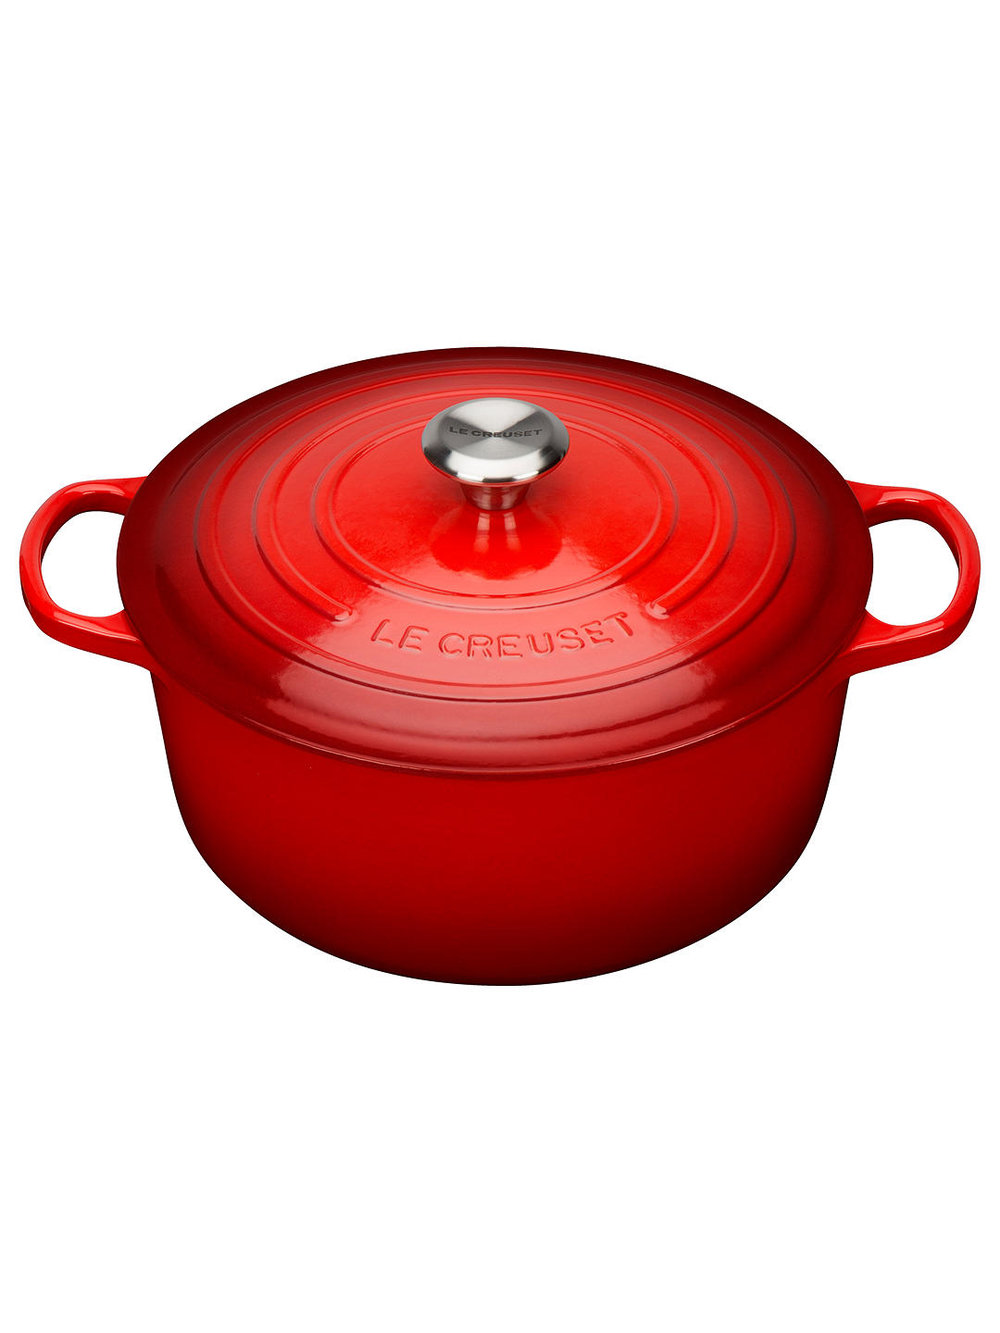 Le Creuset Signature Round Casserole Dish - up to £295